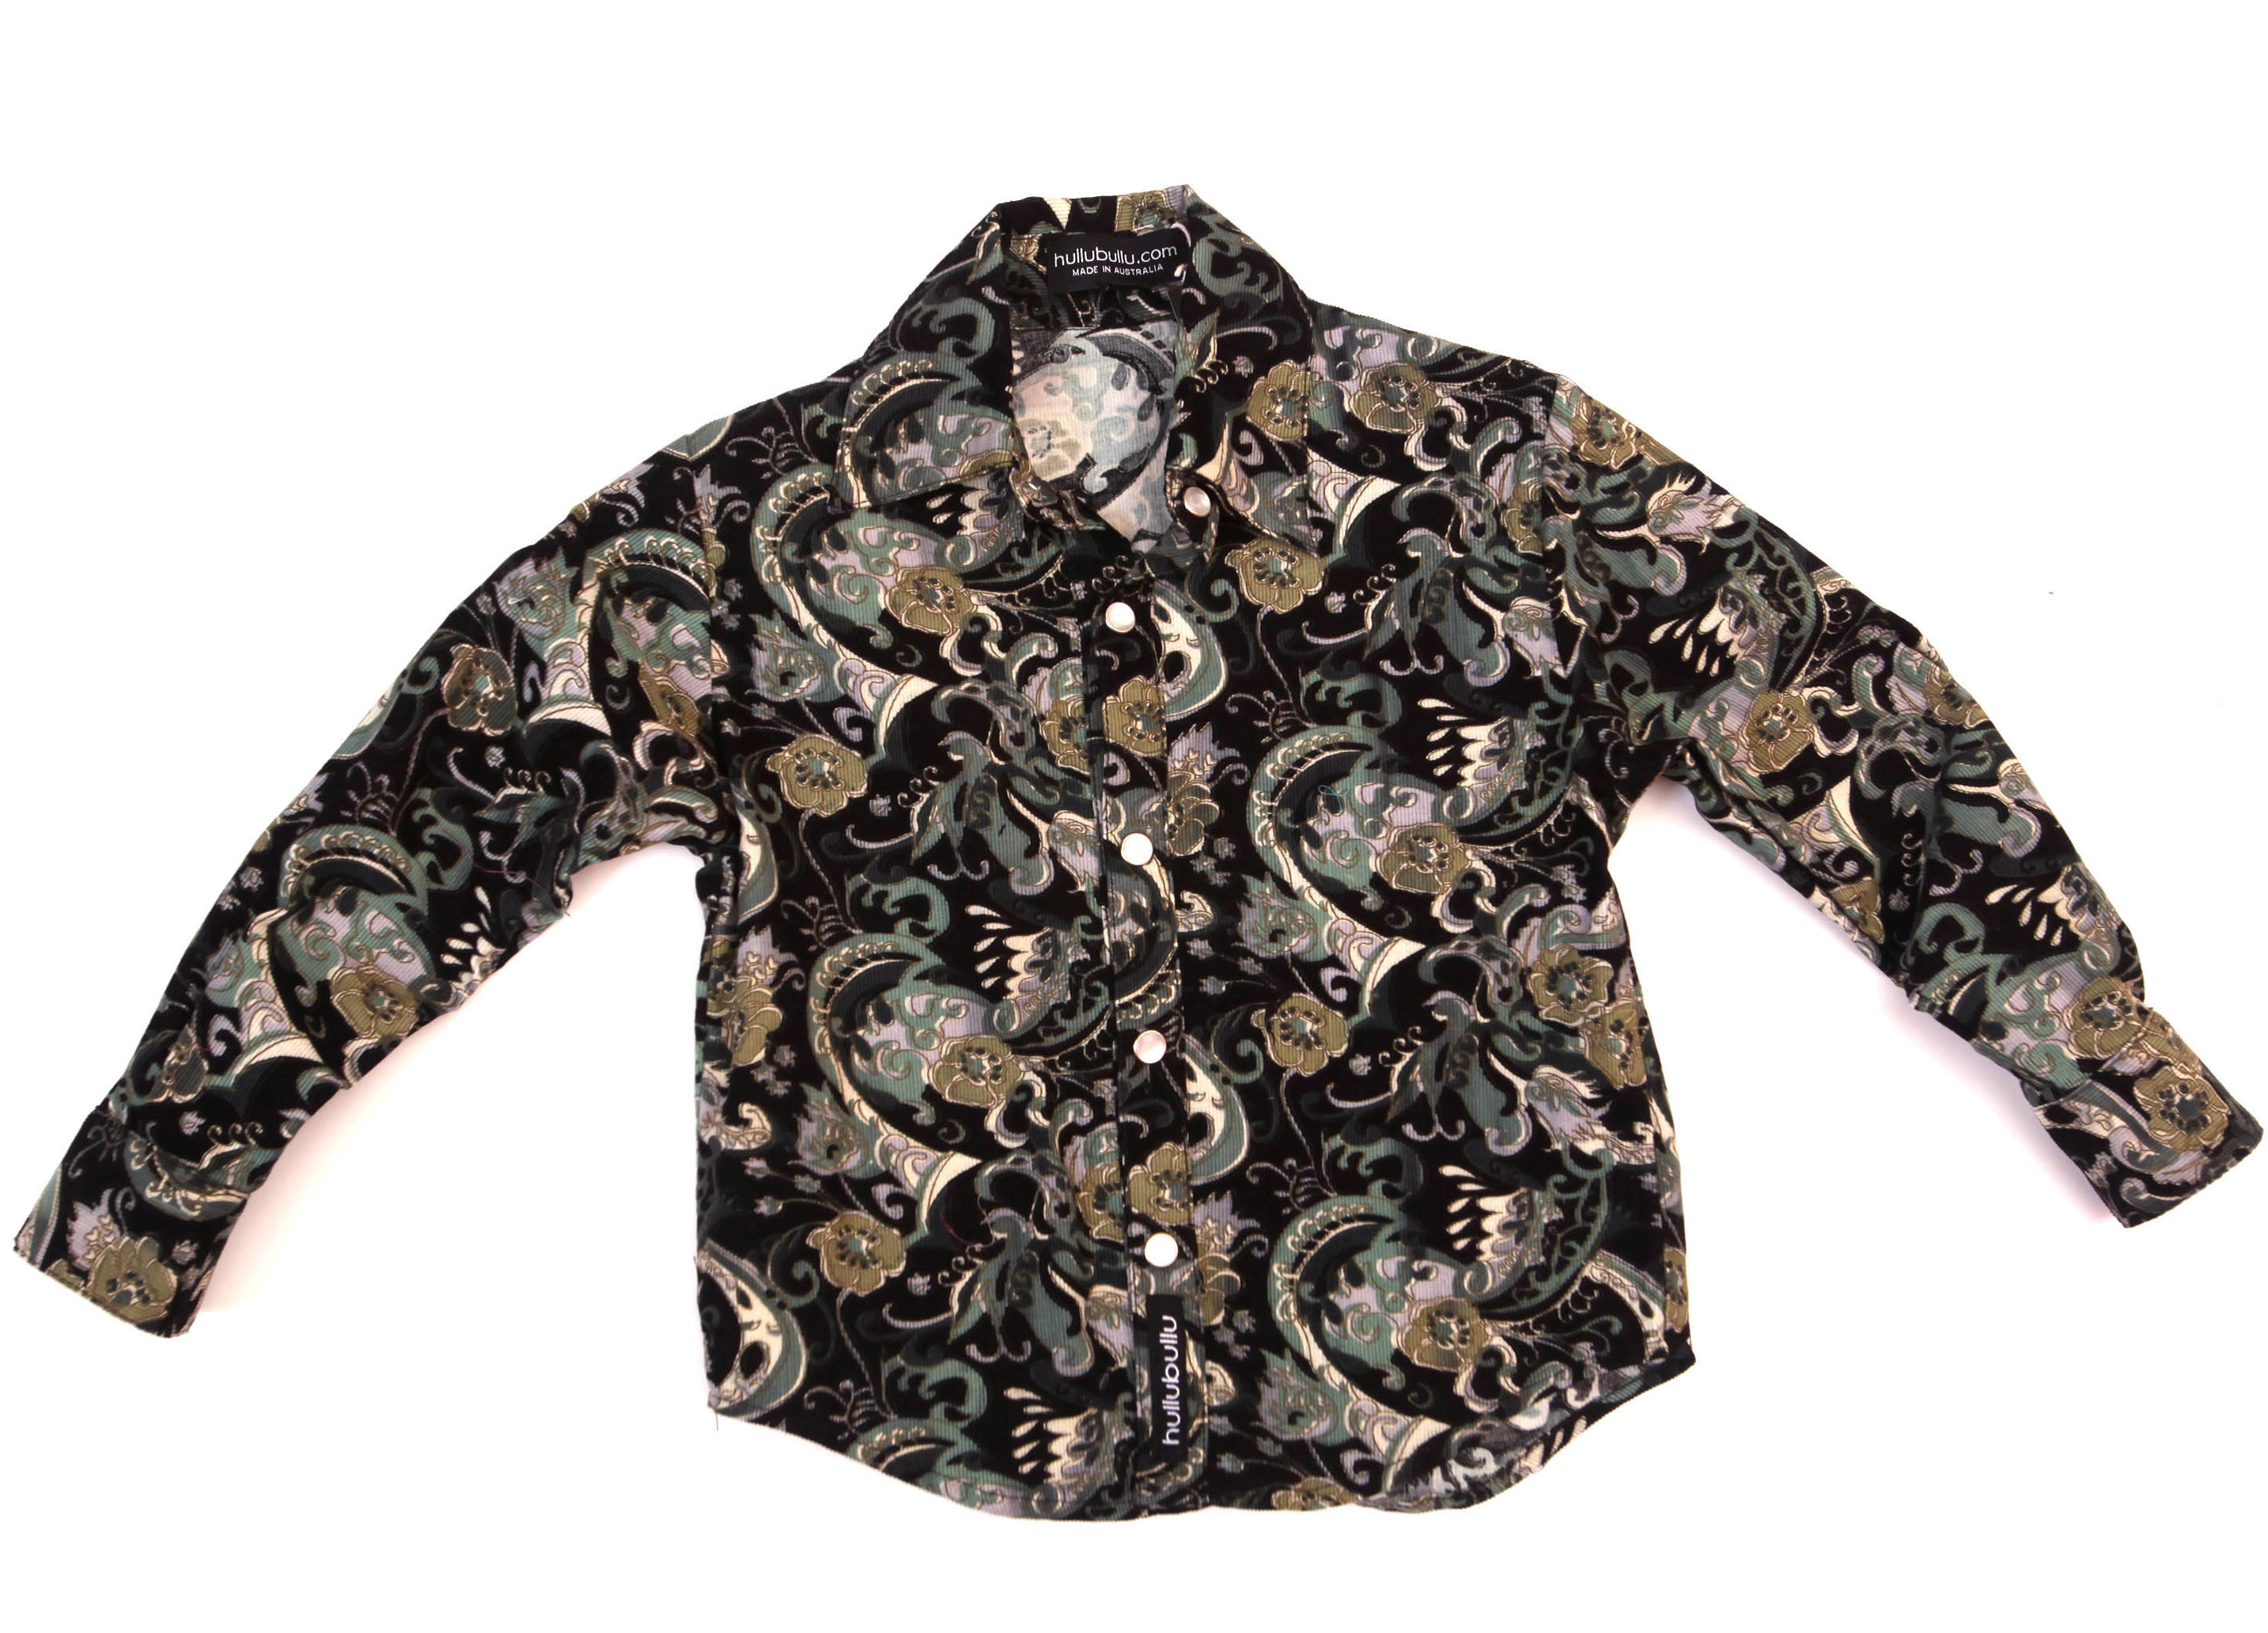 Hullubullu Winter Cord Shirt - Black/Green Paisley